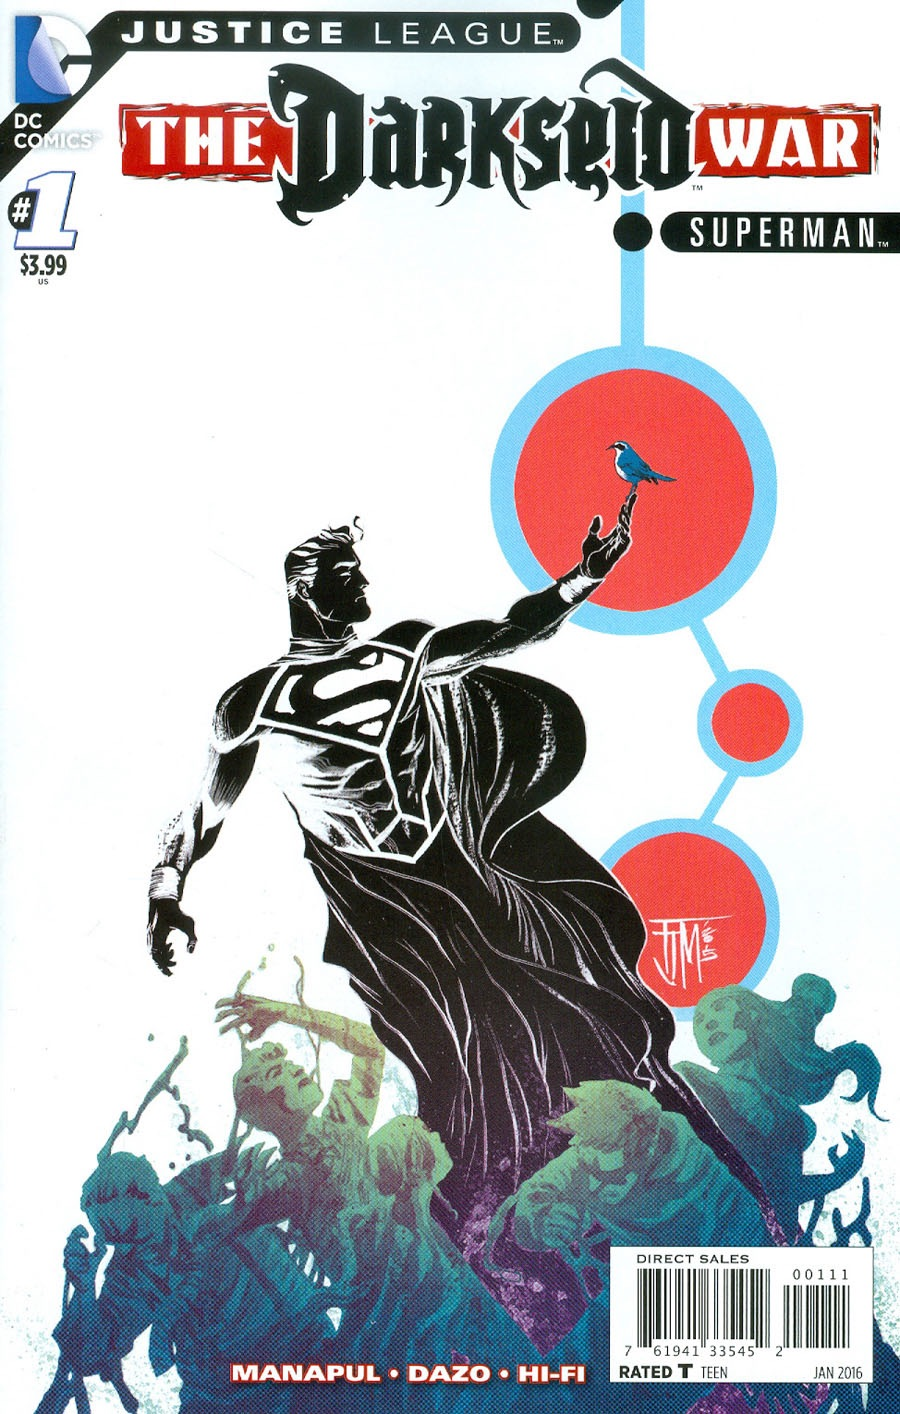 Justice League: Darkseid War - Superman #1